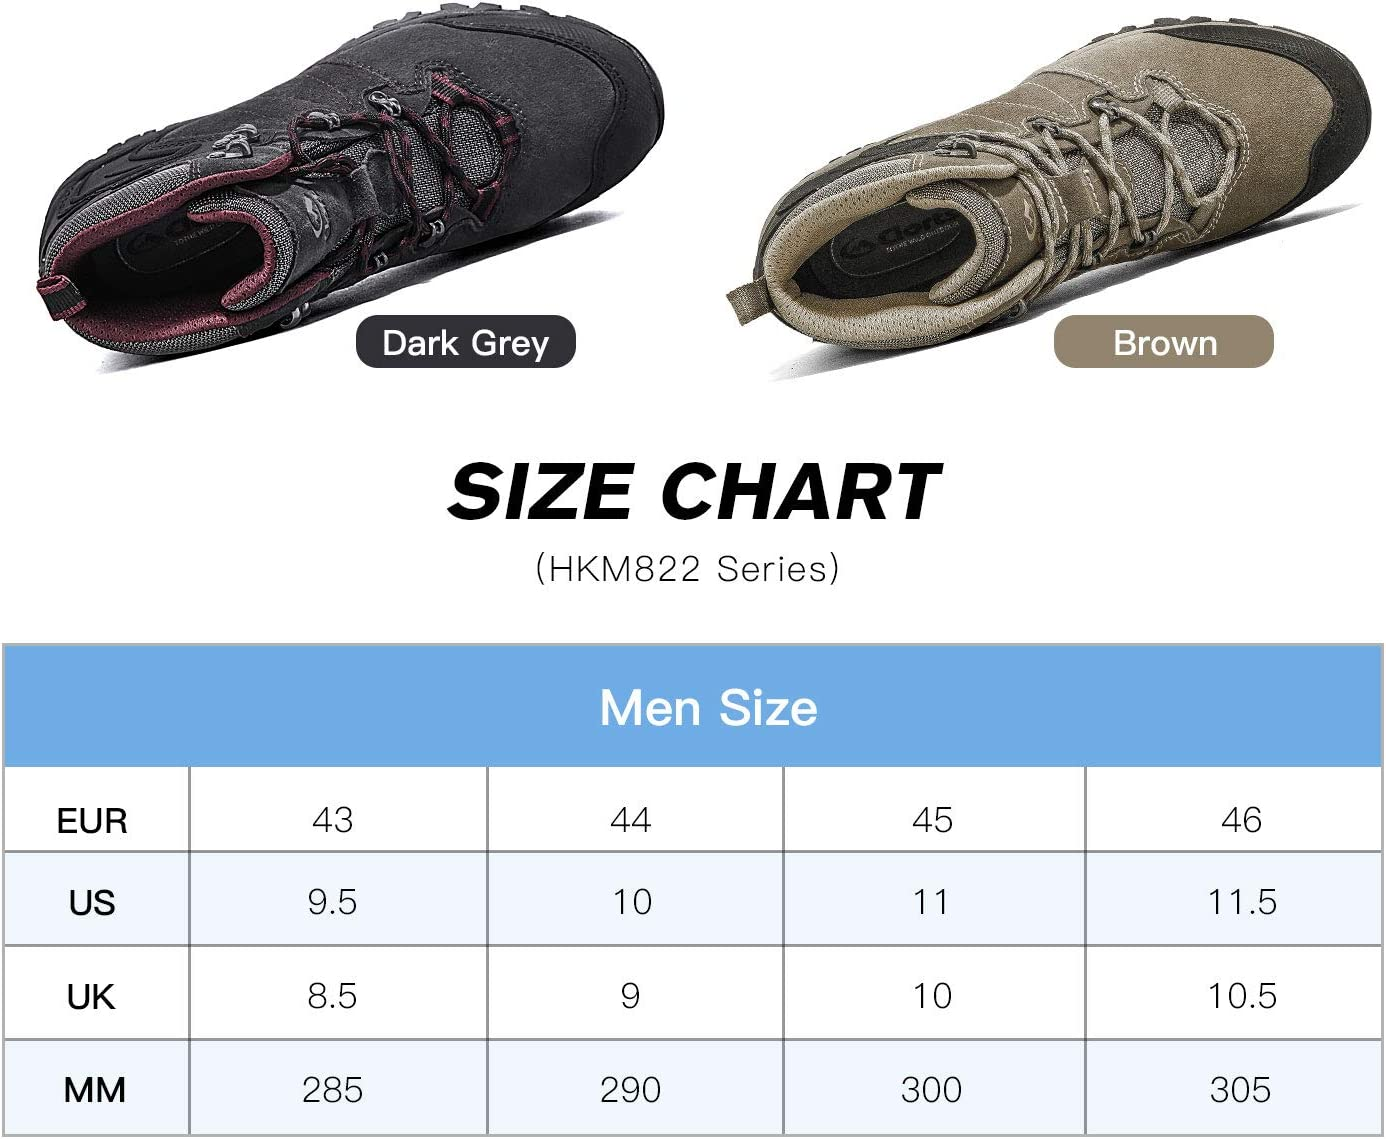 Clorts Men's Hiking Boots Waterproof Suede Leather Lightweight Hiking Shoes Outdoor Backpacking Trekking Trails Classic/brown